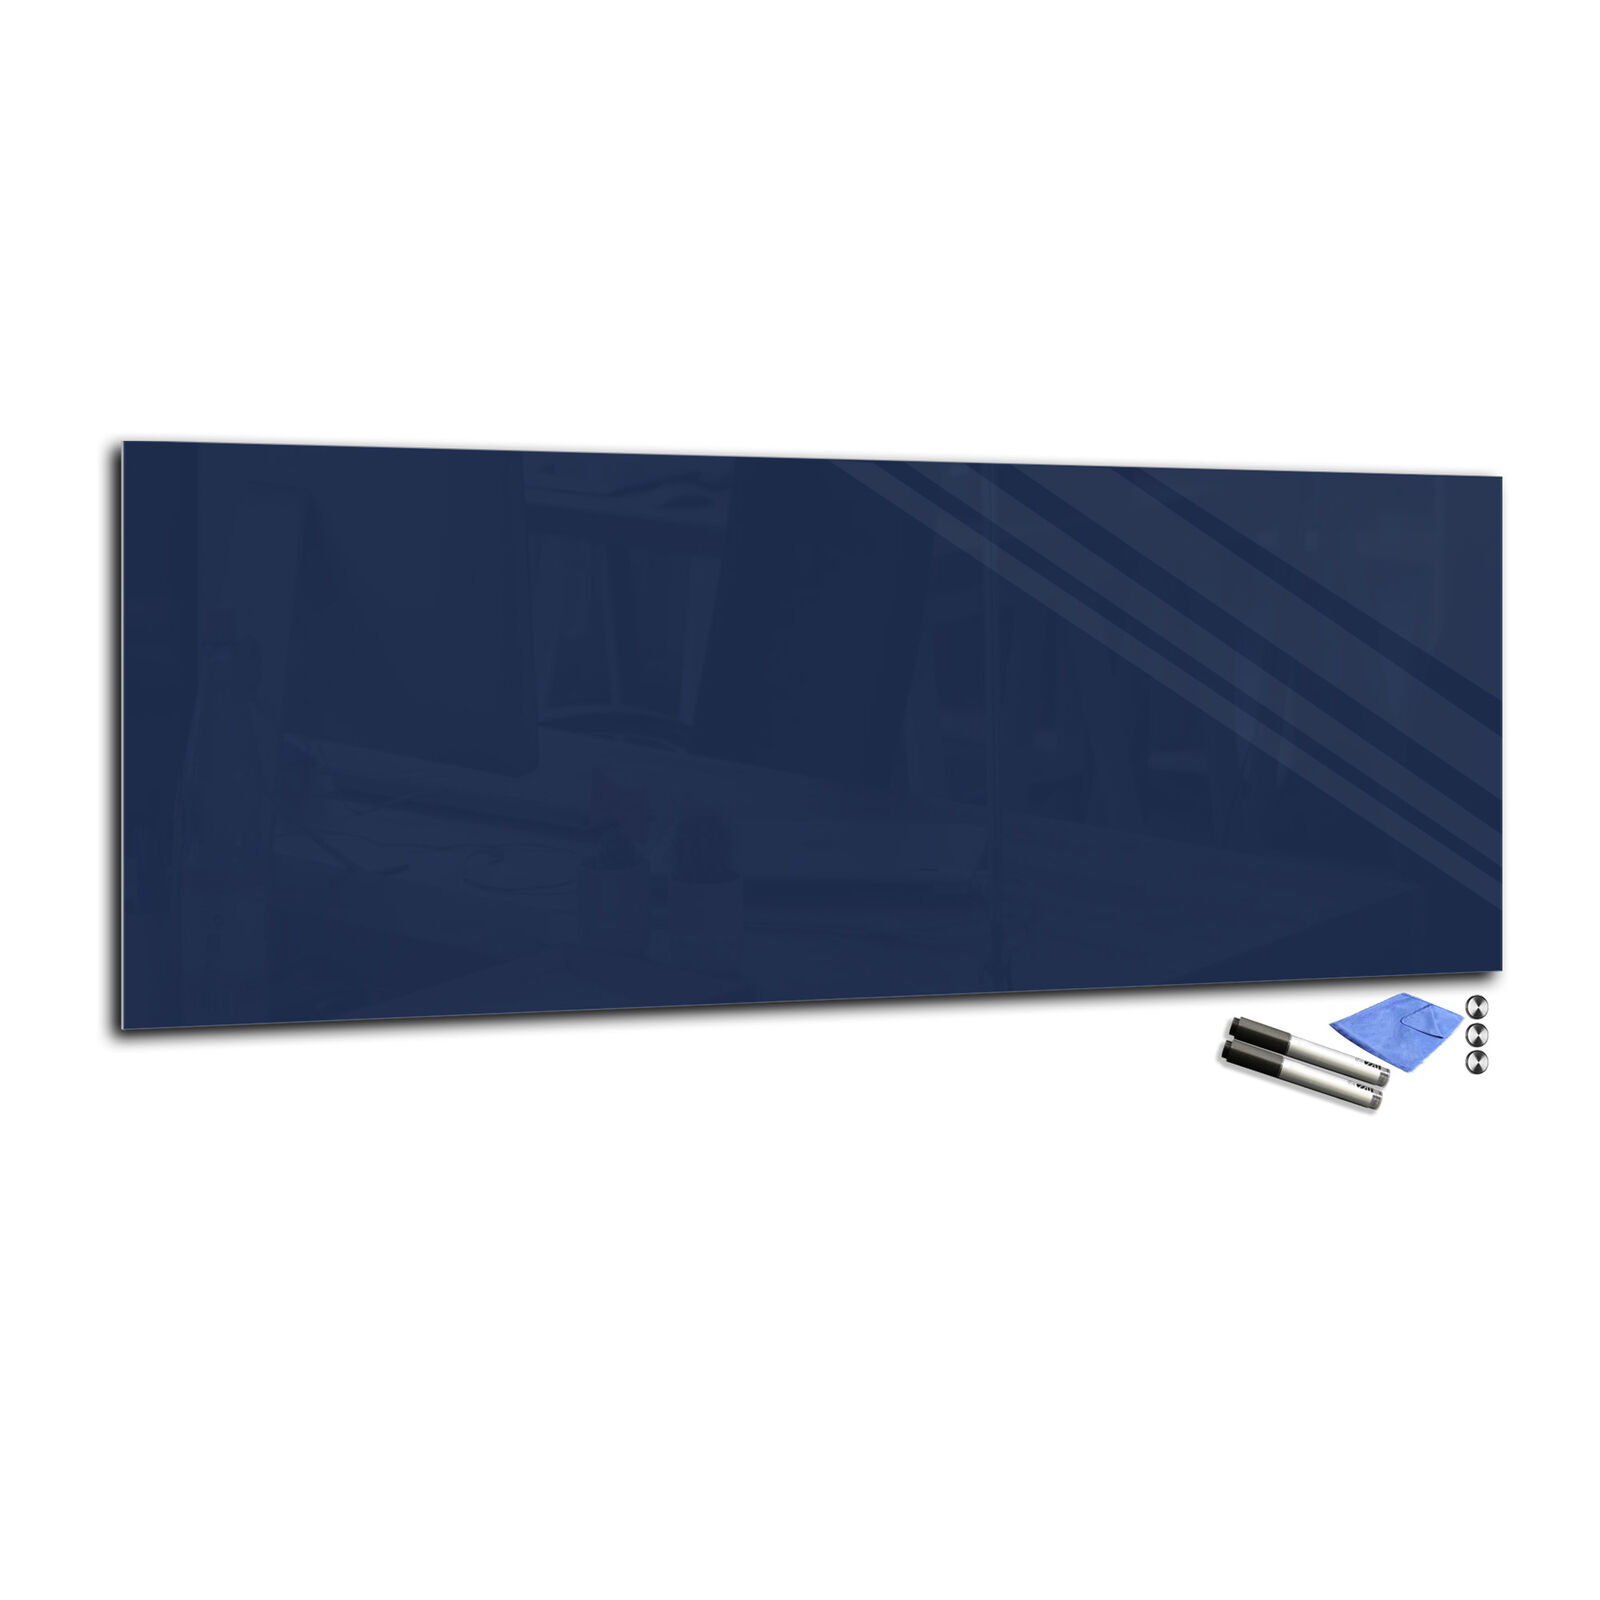 Magnetic Glass Markerboard – Temperot Glass Board T02 40x100cm dark navy Blau